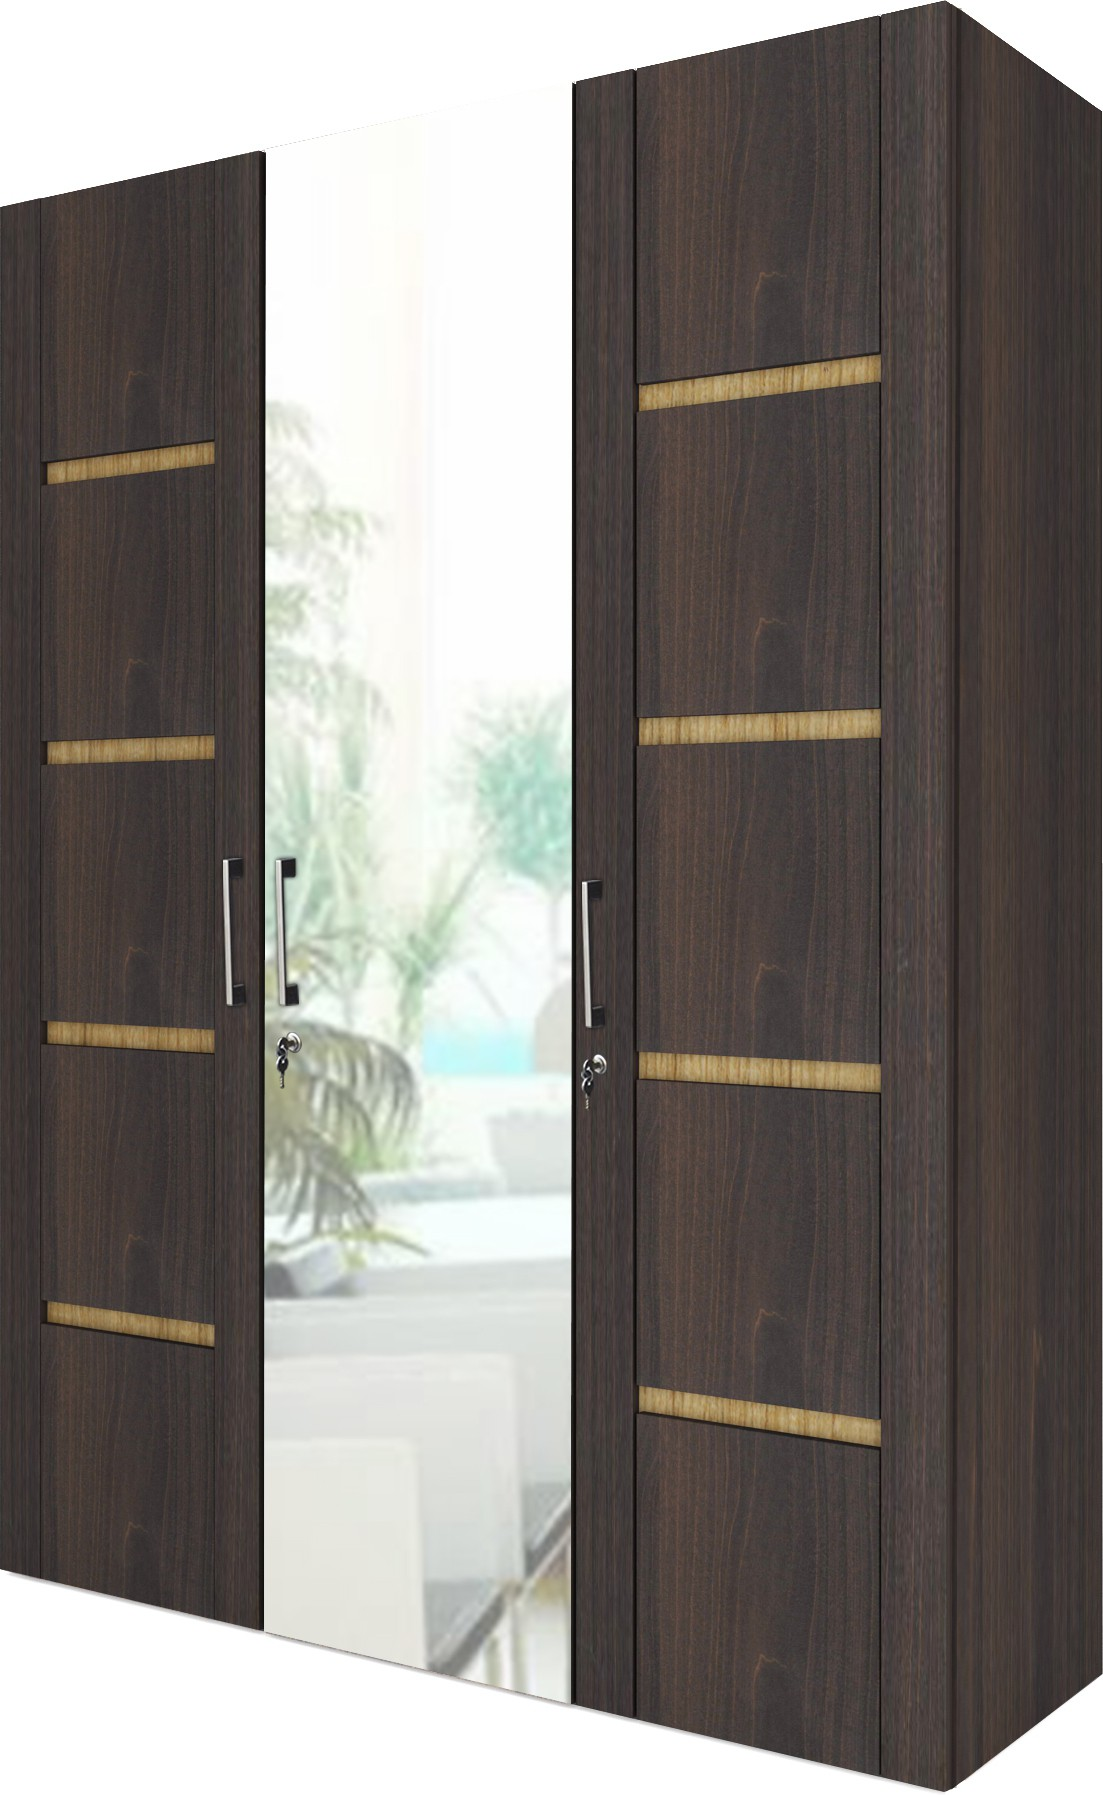 View UNiCOS Iris Engineered Wood 3 Door Wardrobe(Finish Color - Classic Walnut & Urban Teak, Mirror Included) Furniture (UNiCOS)